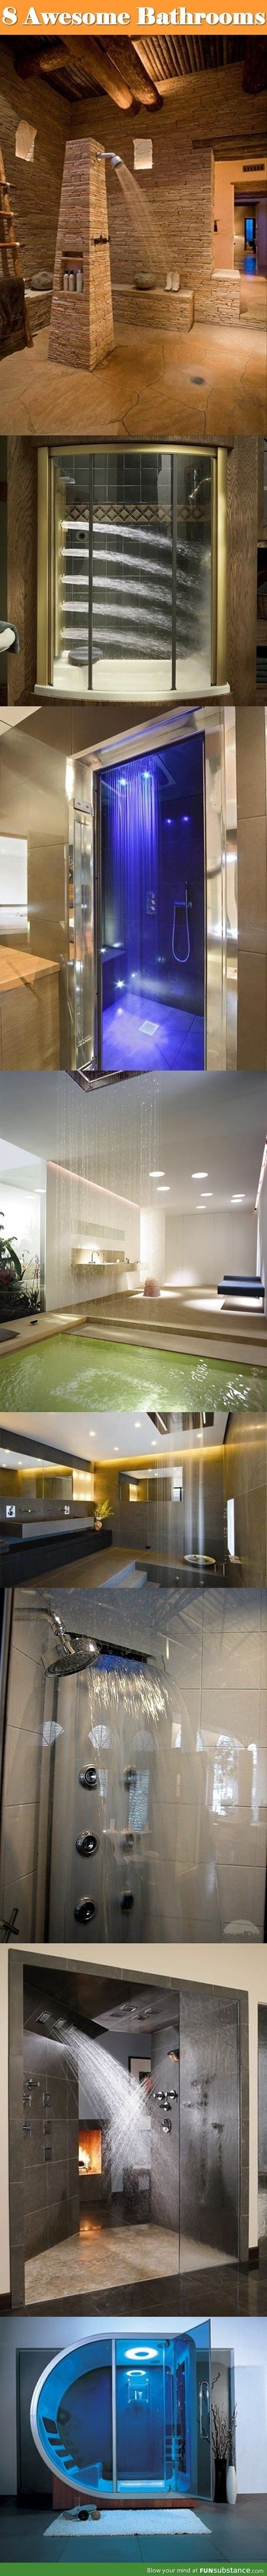 Bathroom that are pretty much more awesome than any entire house I have ever lived in!